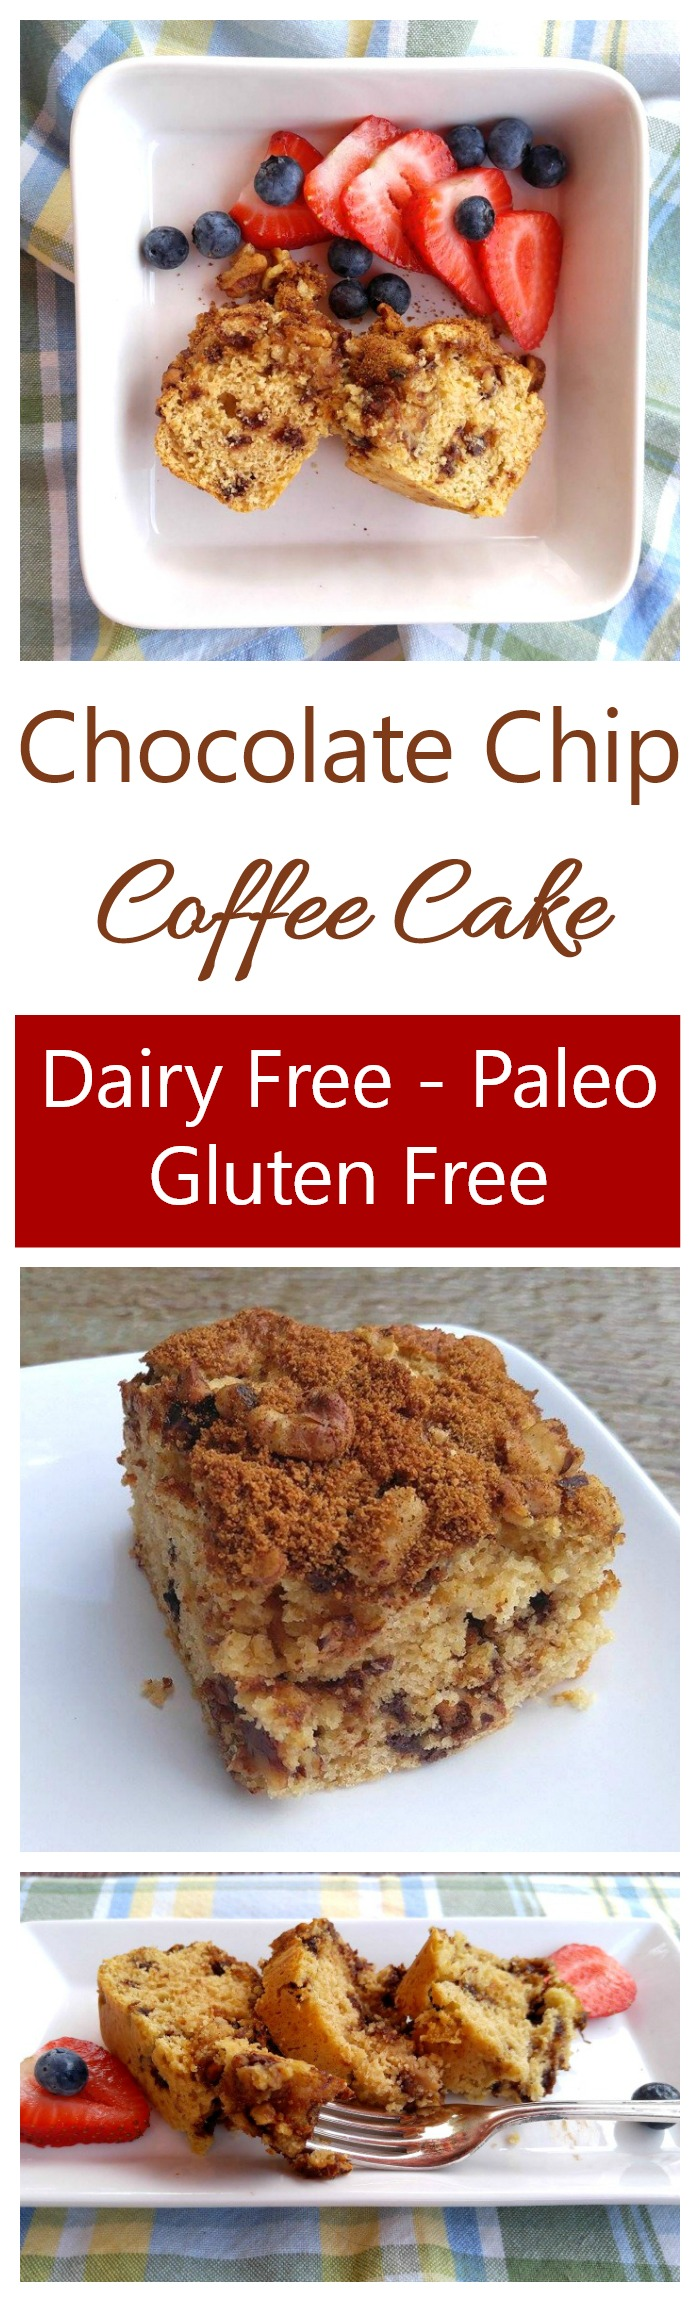 Gluten Free Chocolate Chip Coffee Cake - Paleo - Dairy Free